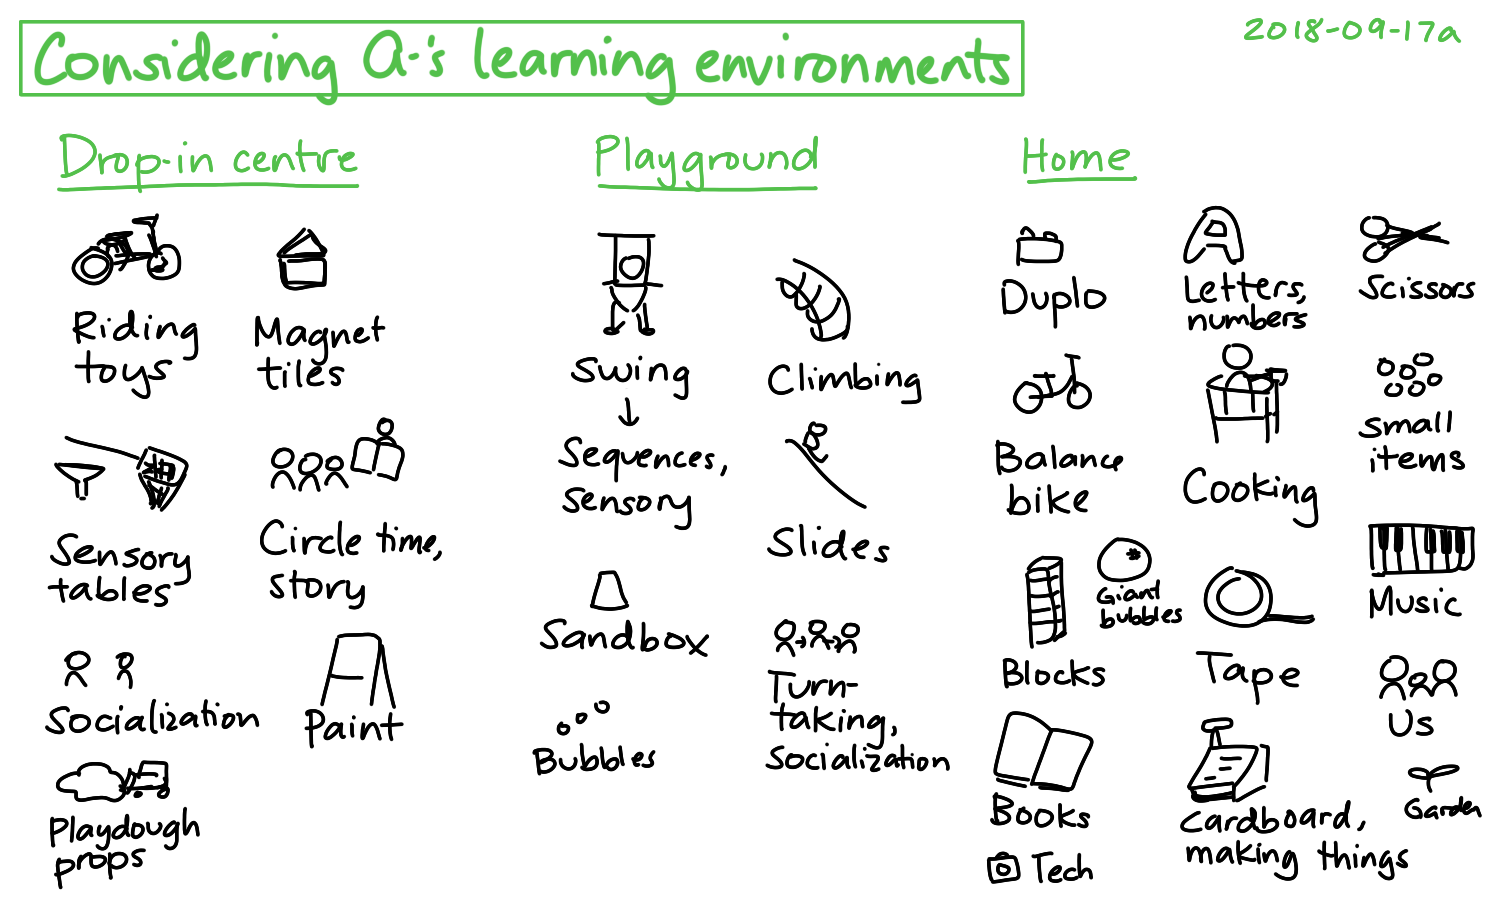 2018-09-17a Considering A-'s learning environments #parenting #ece.png